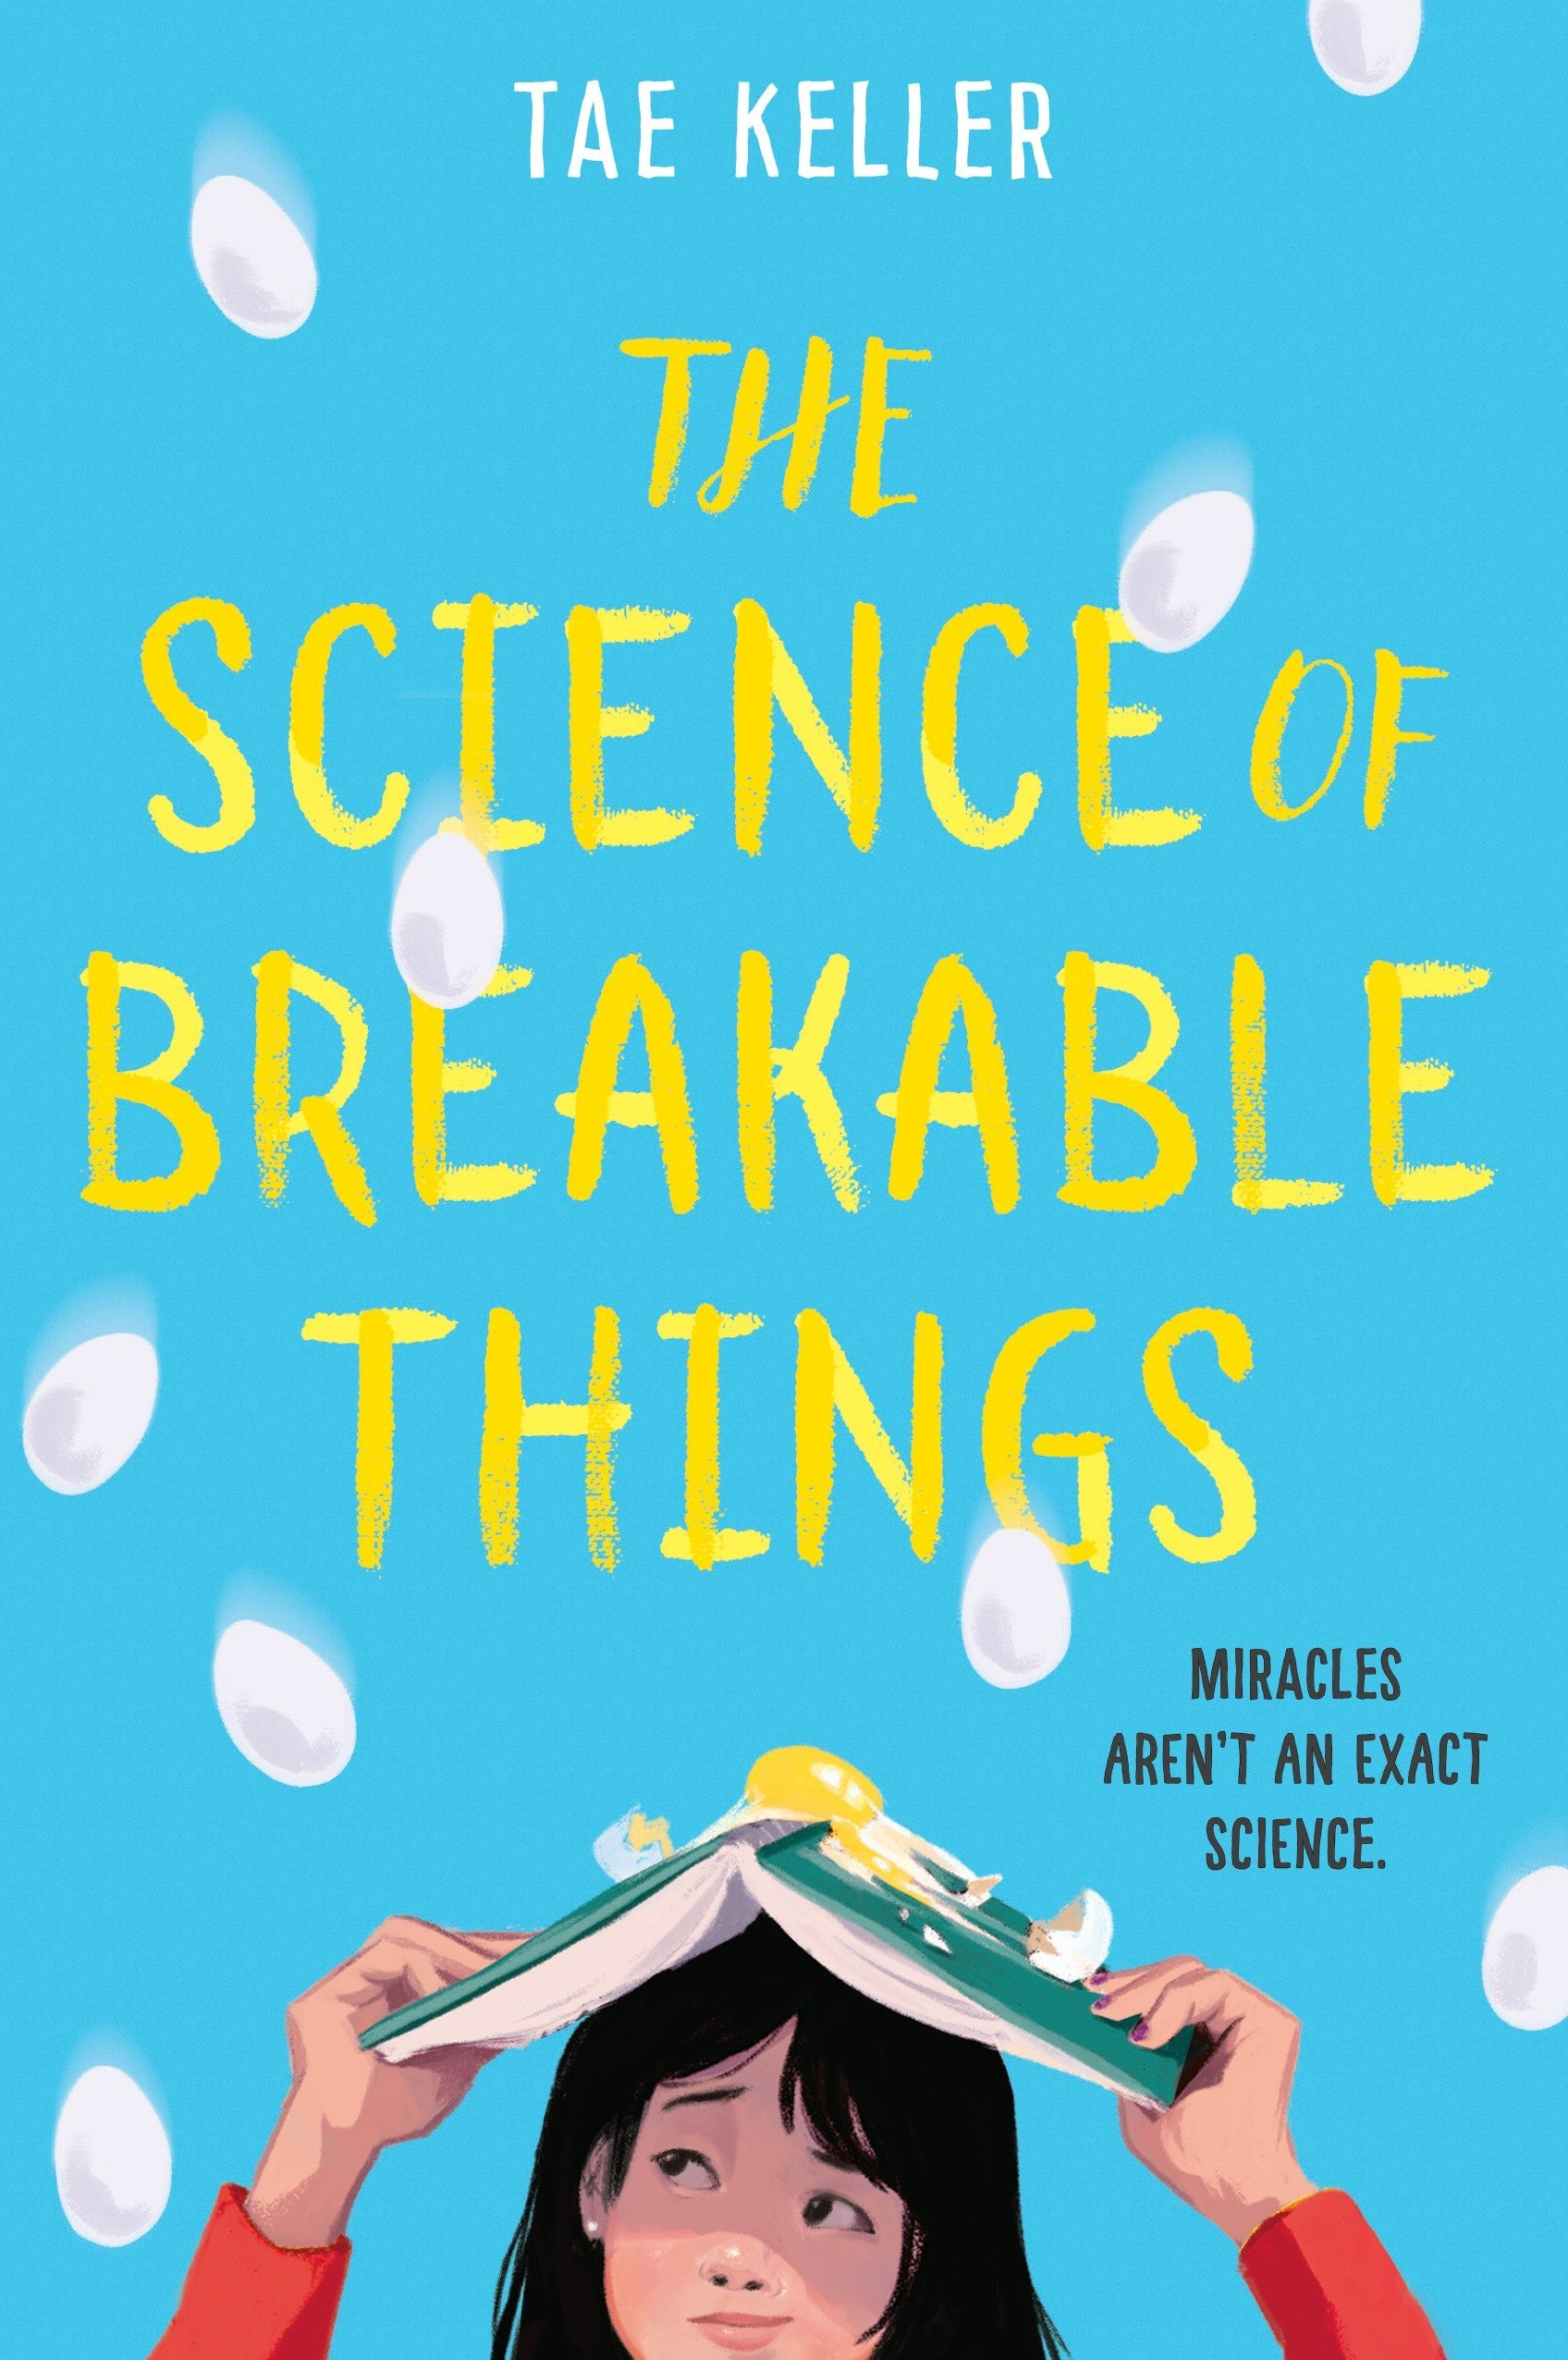 Image result for science of breakable things